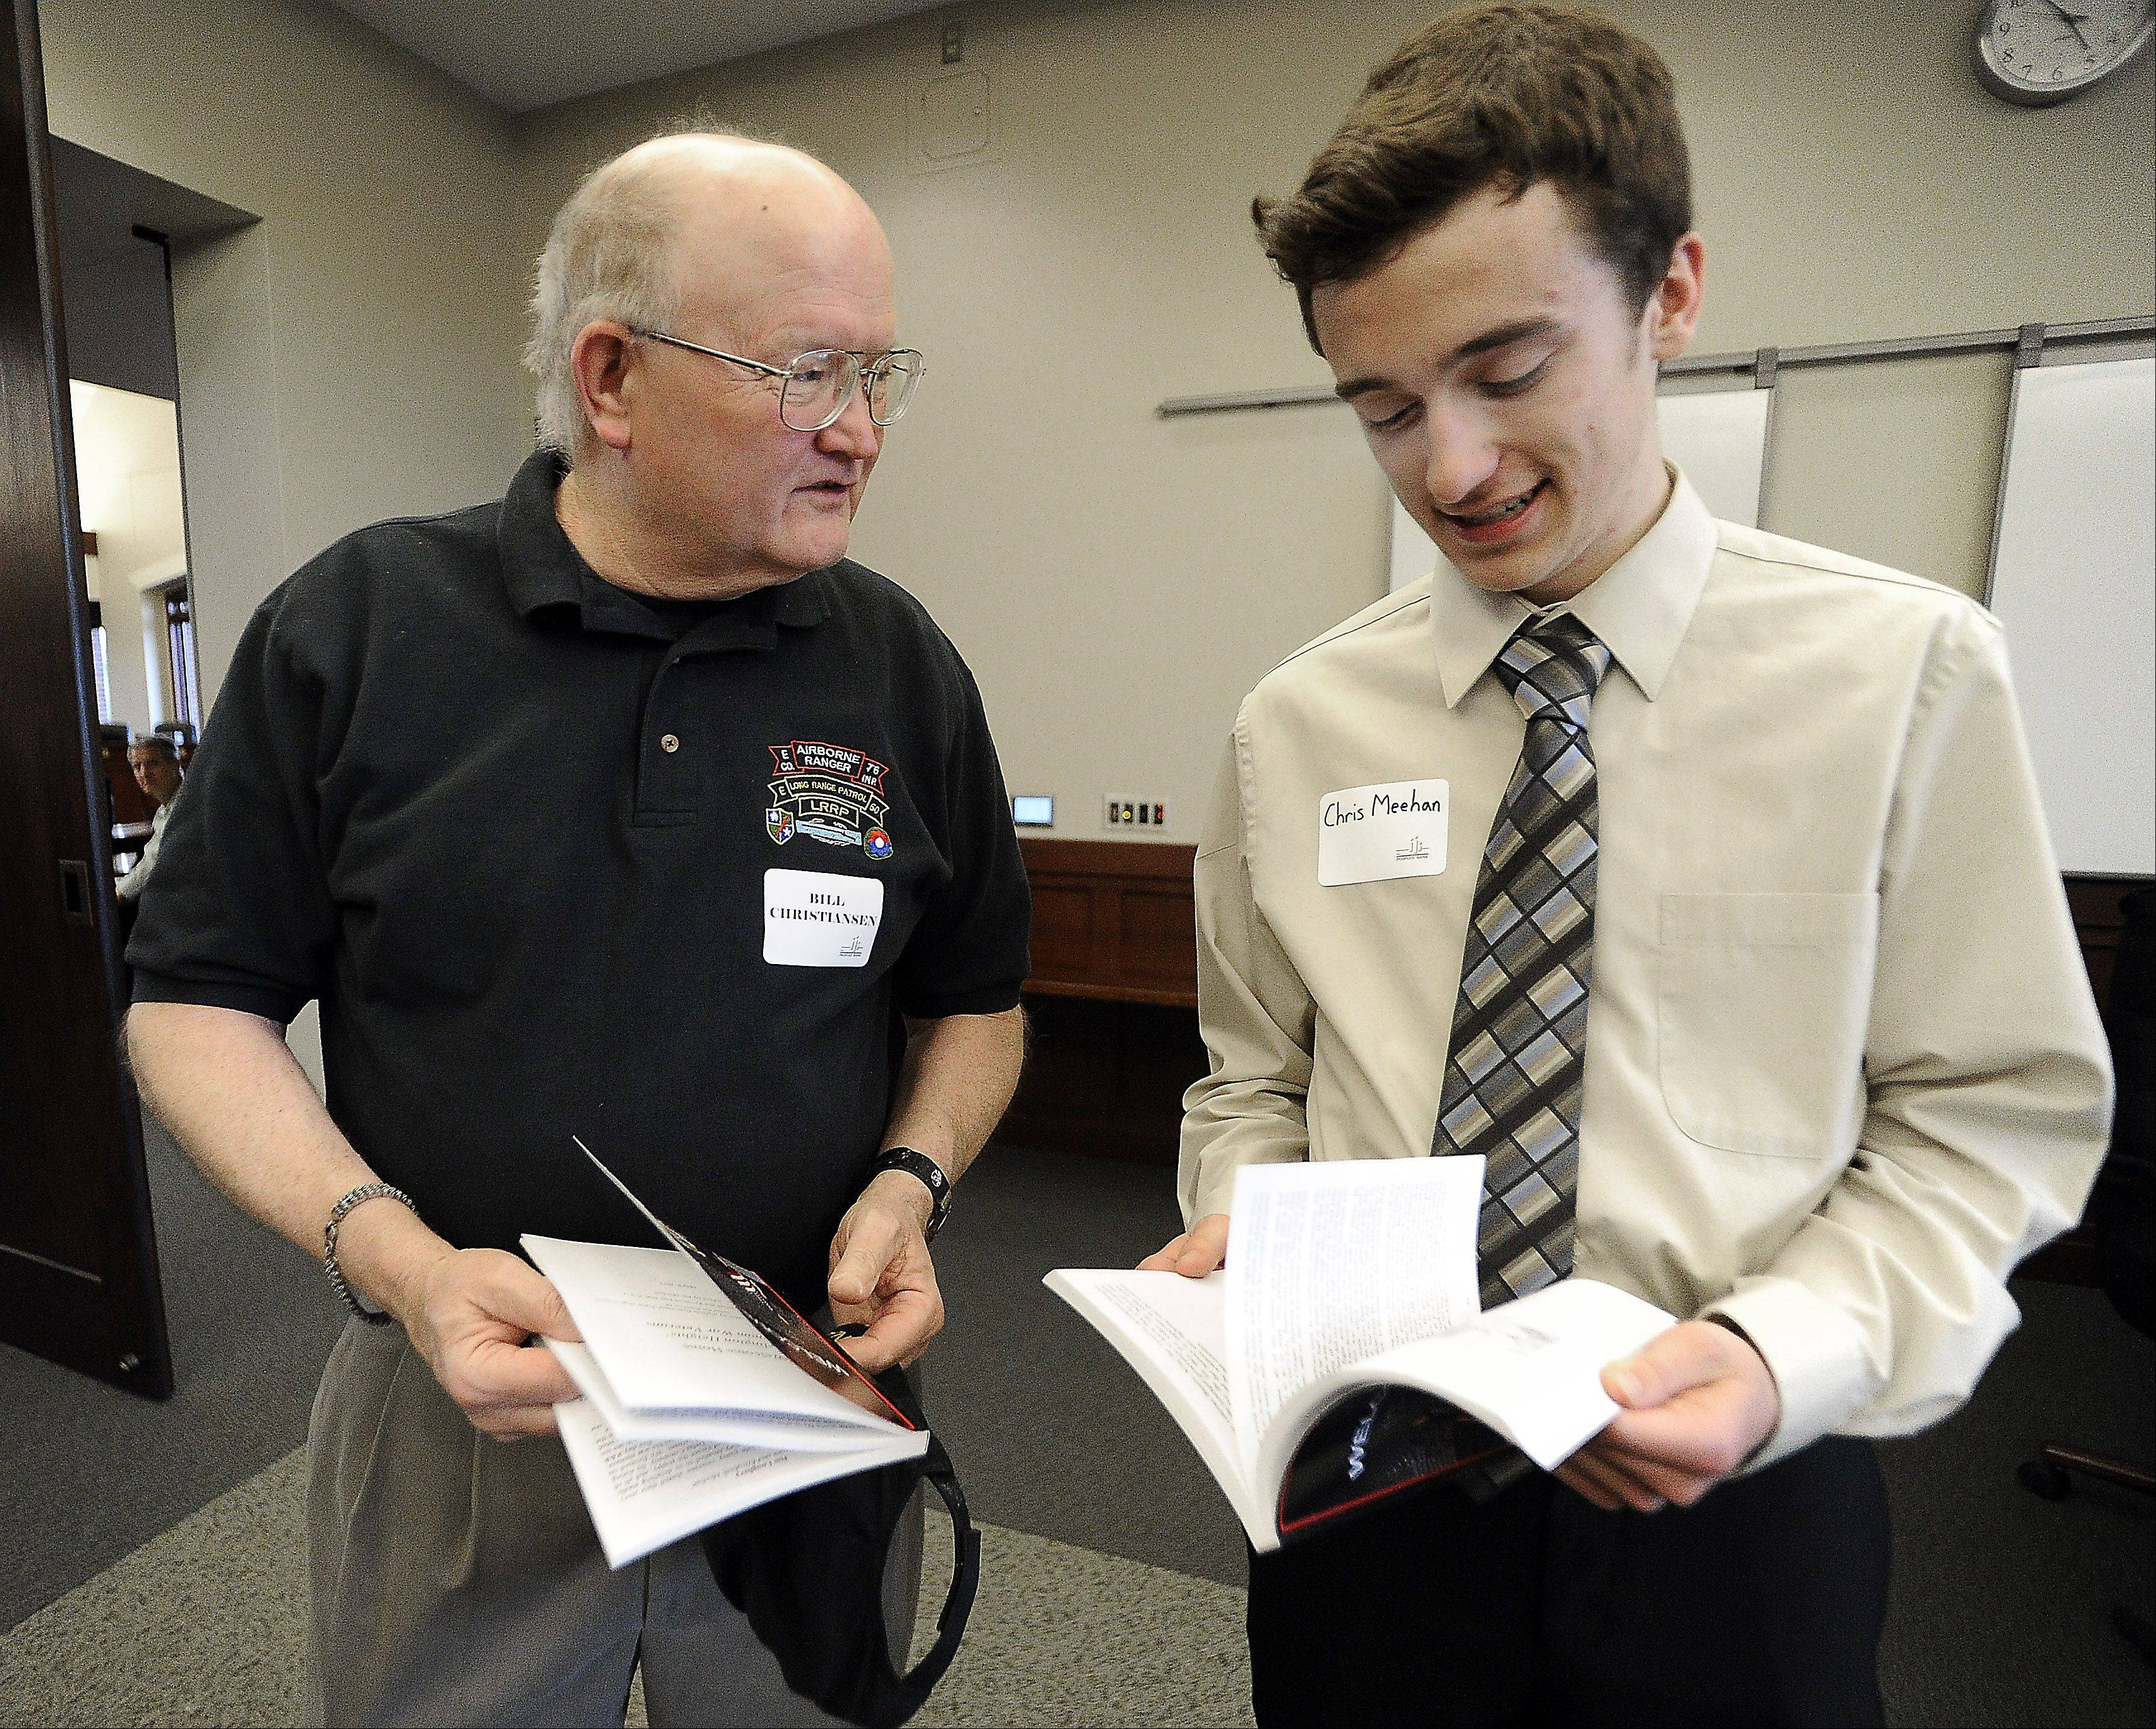 St. Viator junior Chris Meehan talks with veteran Bill Christiansen of Des Plaines, who served in Vietnam in 1969.